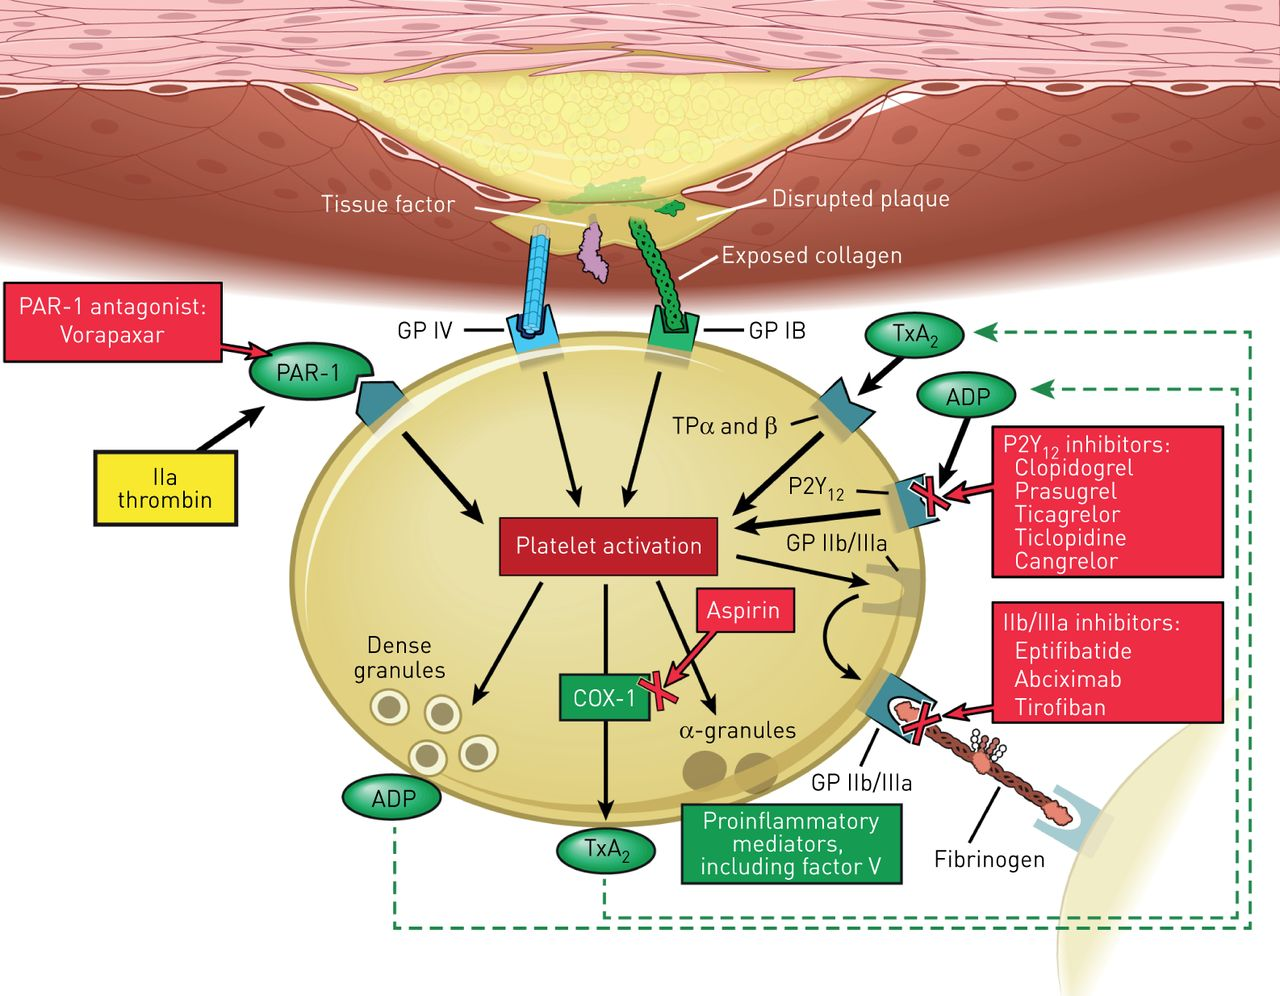 Management of antithrombotic agents in patients undergoing